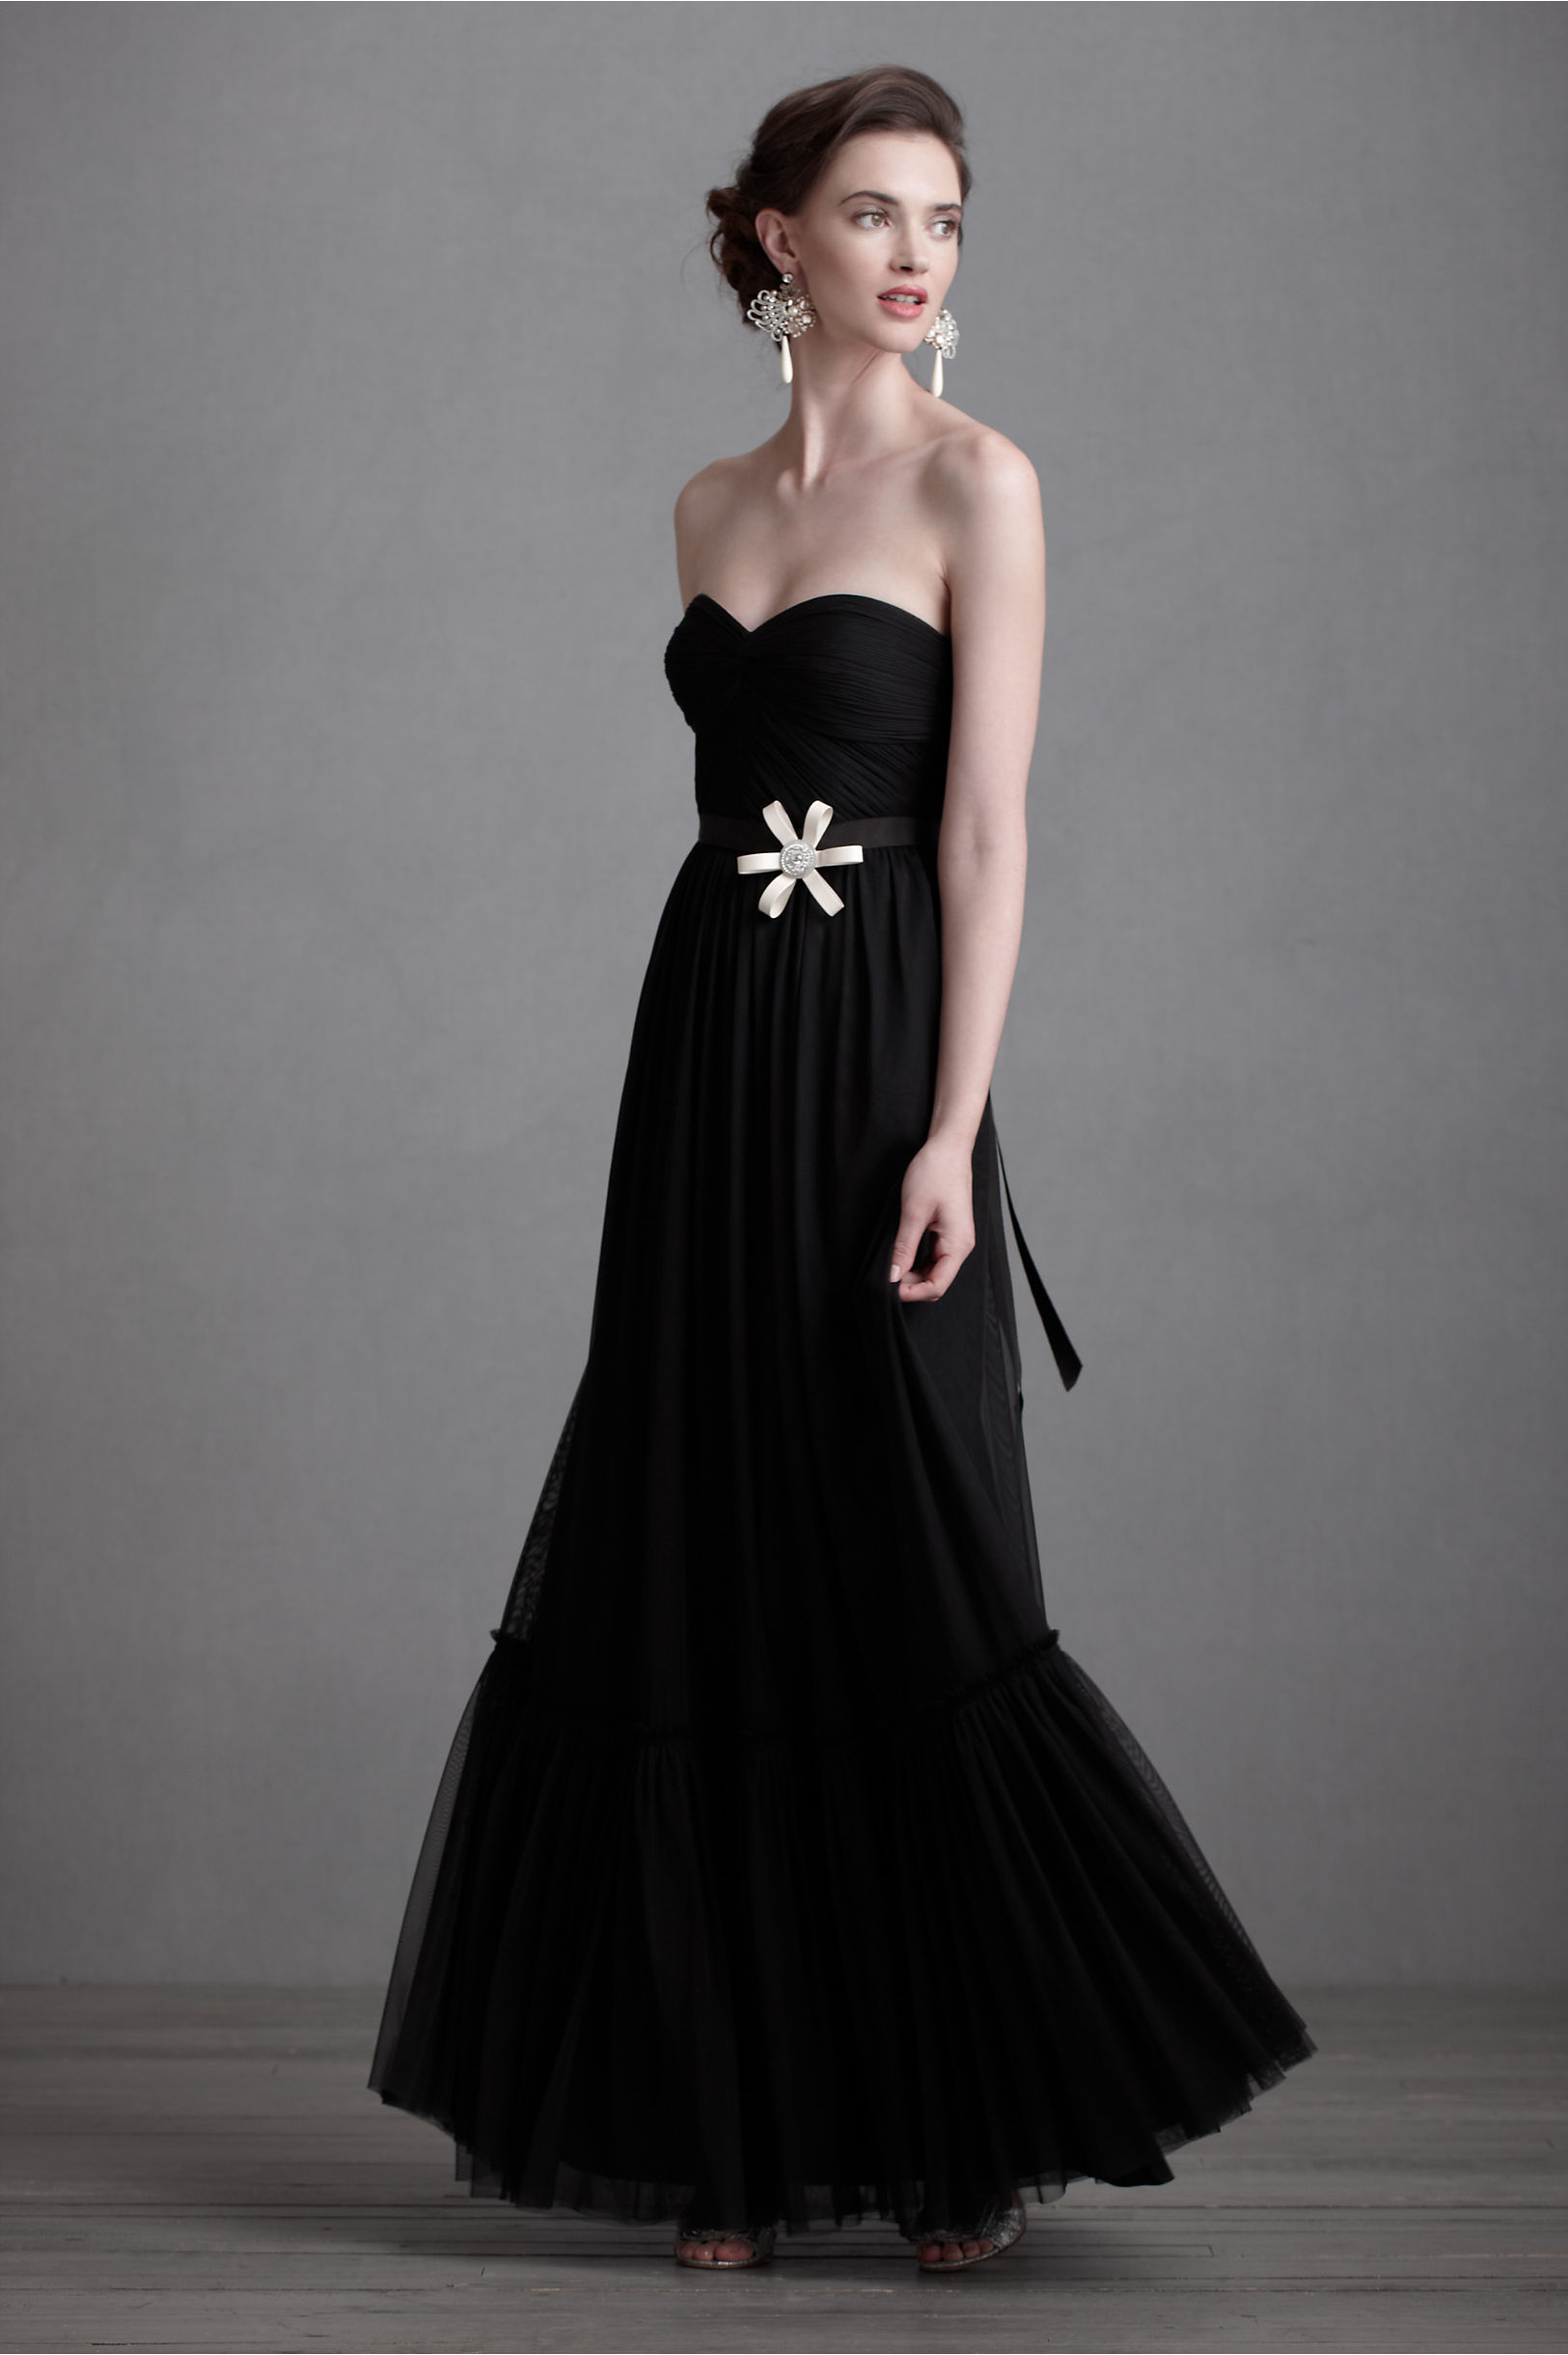 Black-bridesmaid-dresses-for-downtown-chic-weddings-bhldn.original